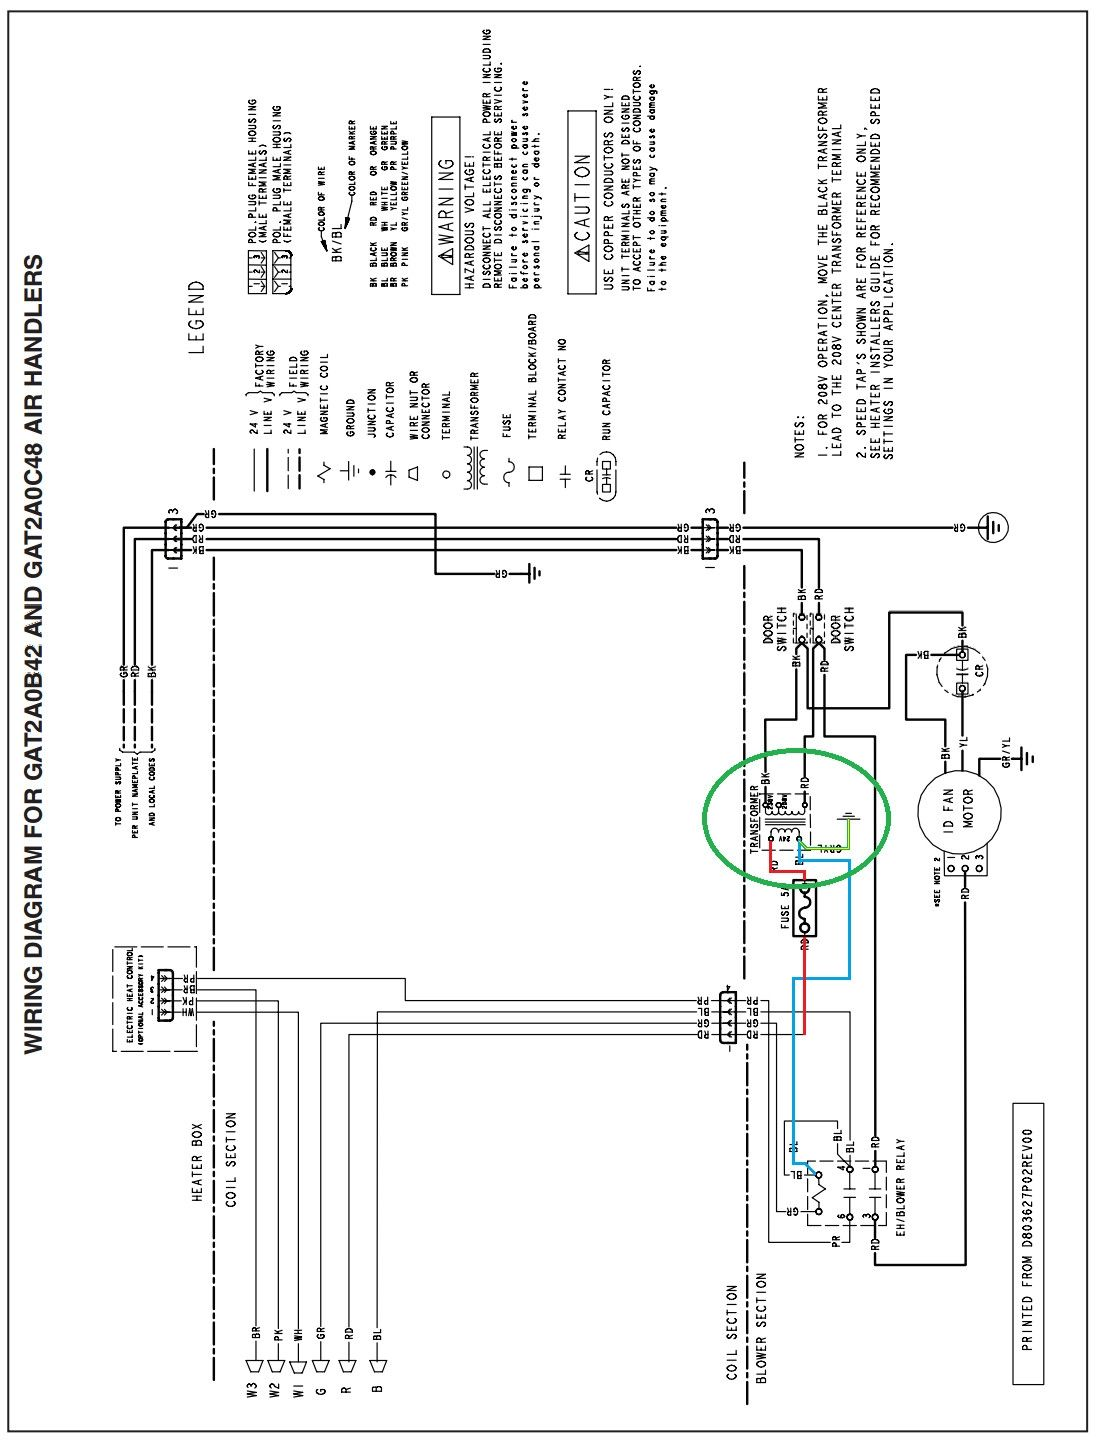 Trane Air Handler Wiring Diagram Hvac With | Deconstructmyhouse with Trane  Wiring Diagram | Diagram, Trane, Diagram designPinterest